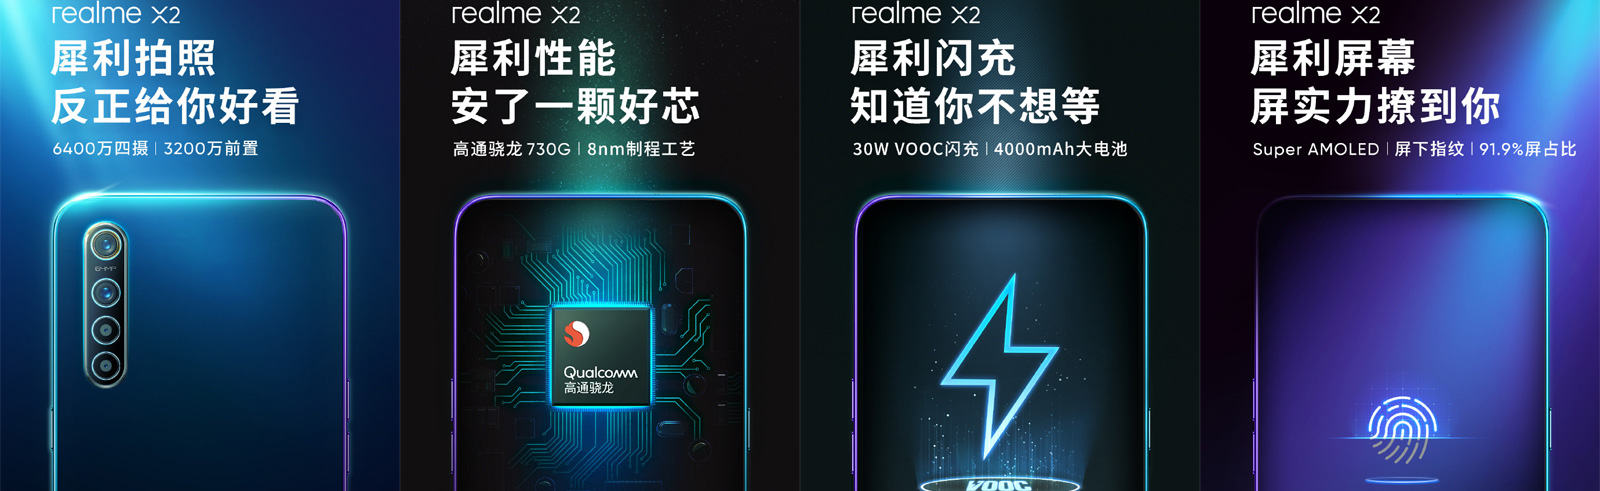 Realme X2 is the Realme XT 730G for China, is similar to Oppo K5